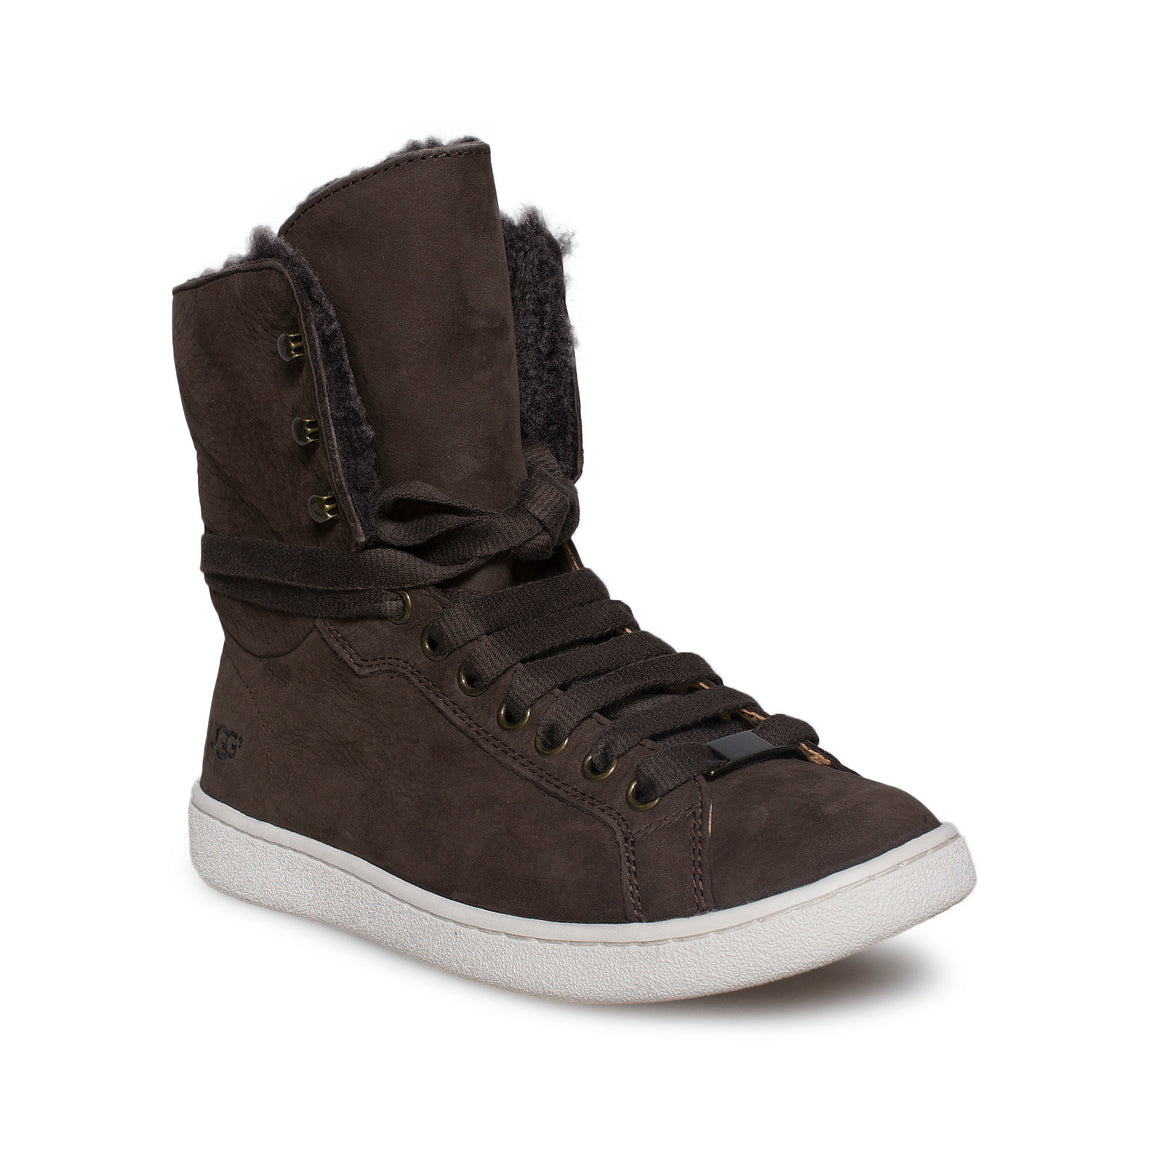 UGG Starlyn Chocolate Sneakers